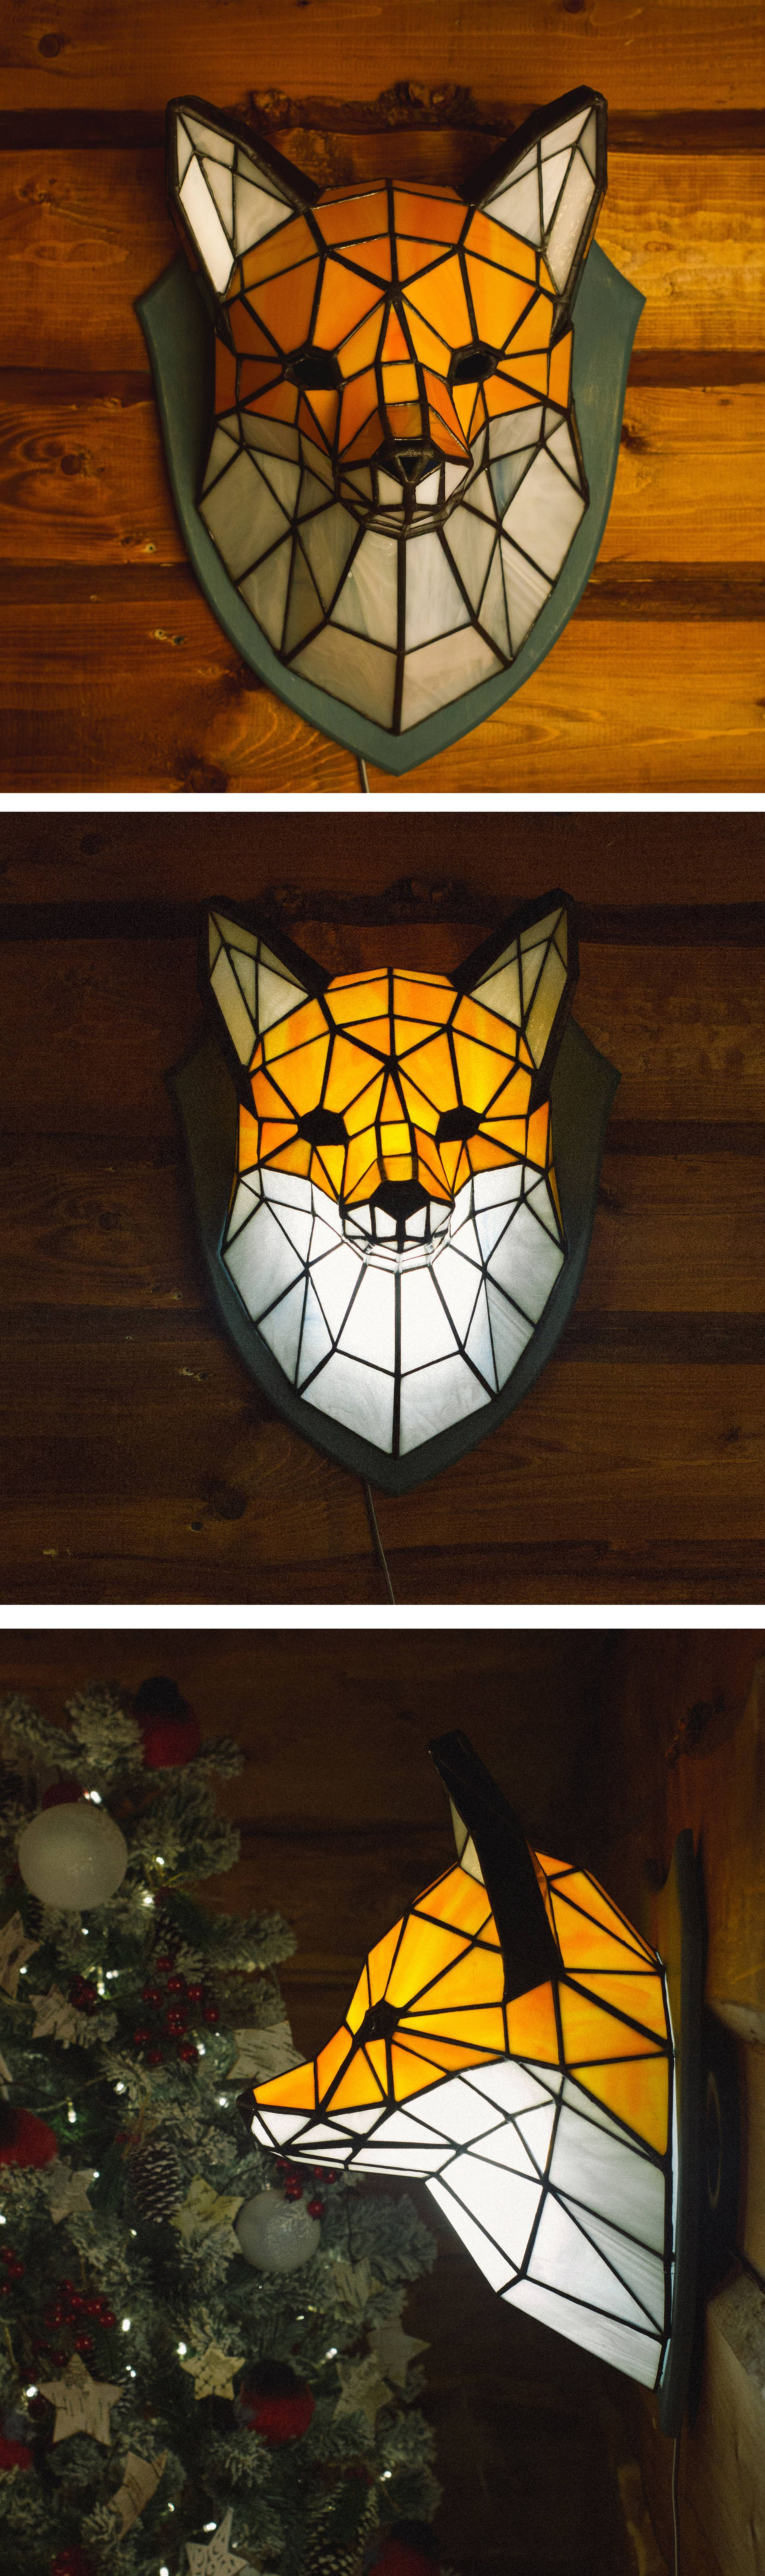 Fox Sconce made of stained glass in Tiffany technique ...